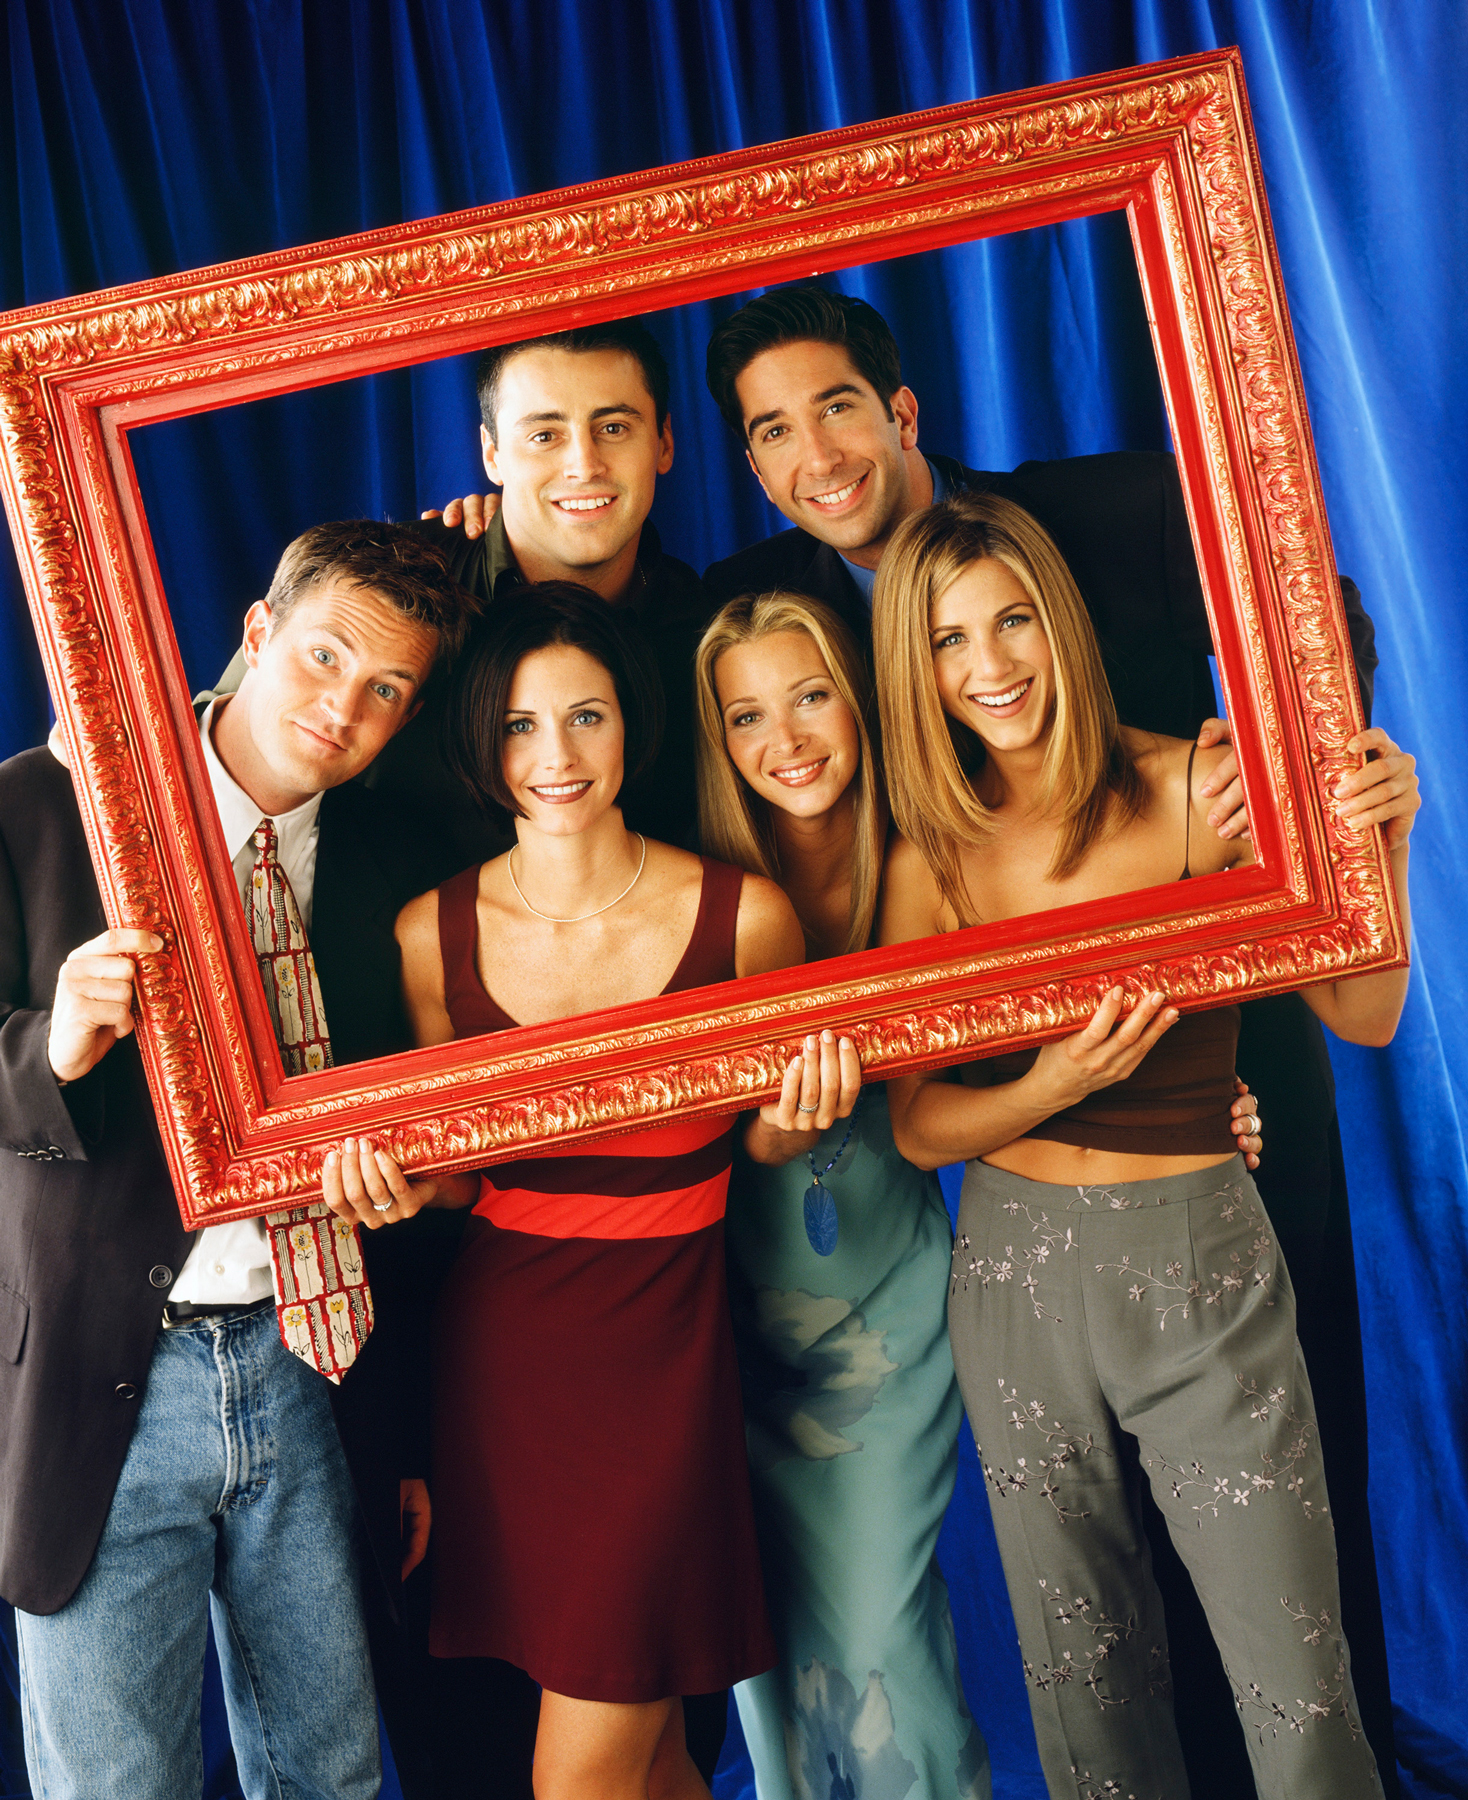 The One with the Lottery Friends Episode - Phoebe, Ross, Rachel, Joey, Chandler, and Monica